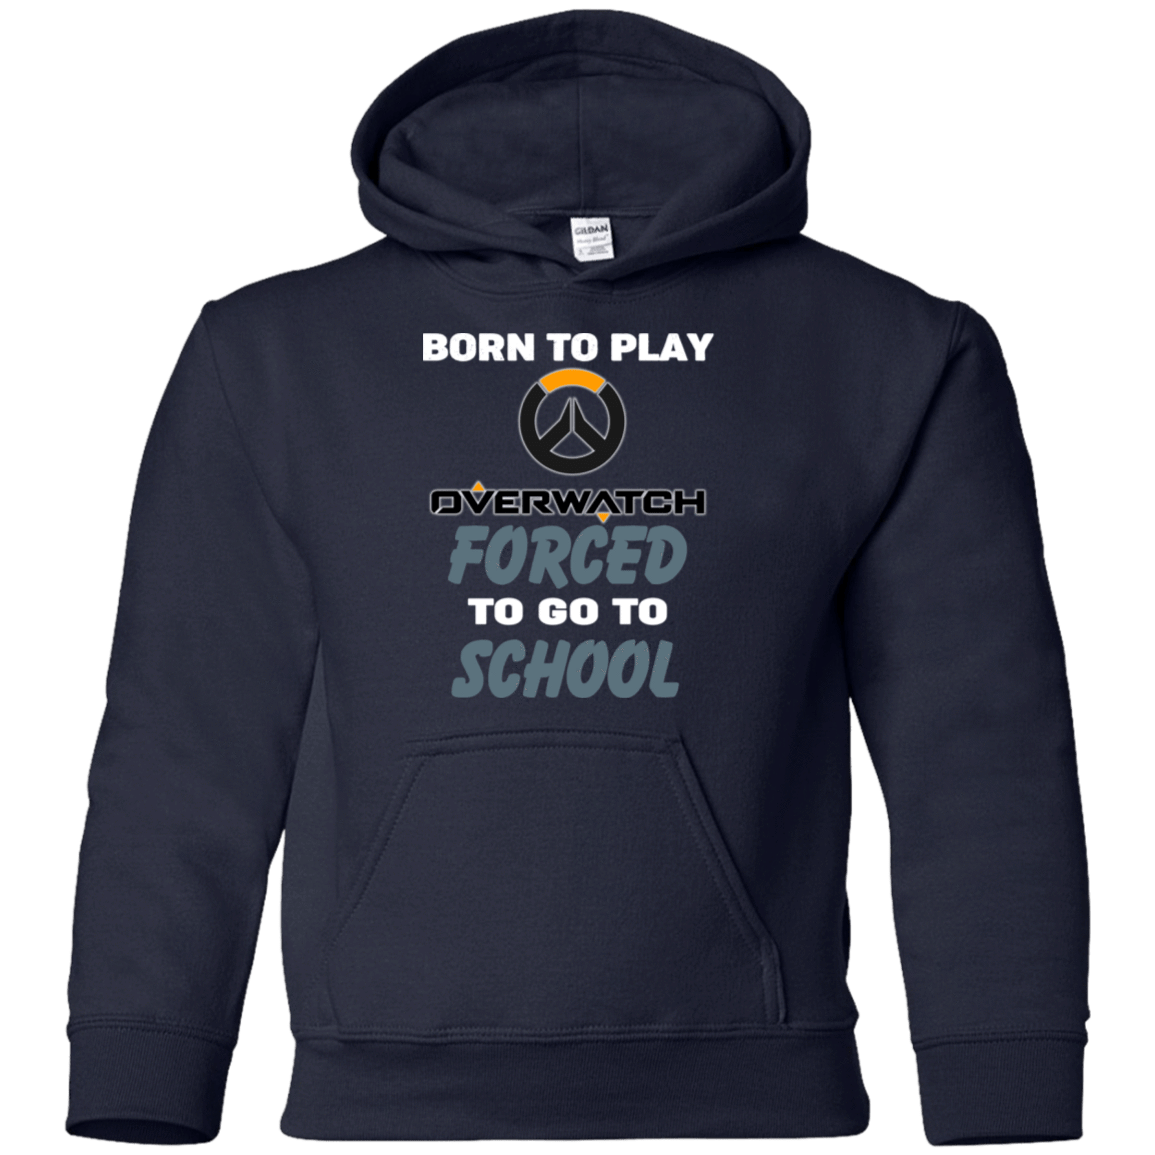 Born To Play Overwatch Forced To Go To School 59-334-74209661-1275 - Tee Ript